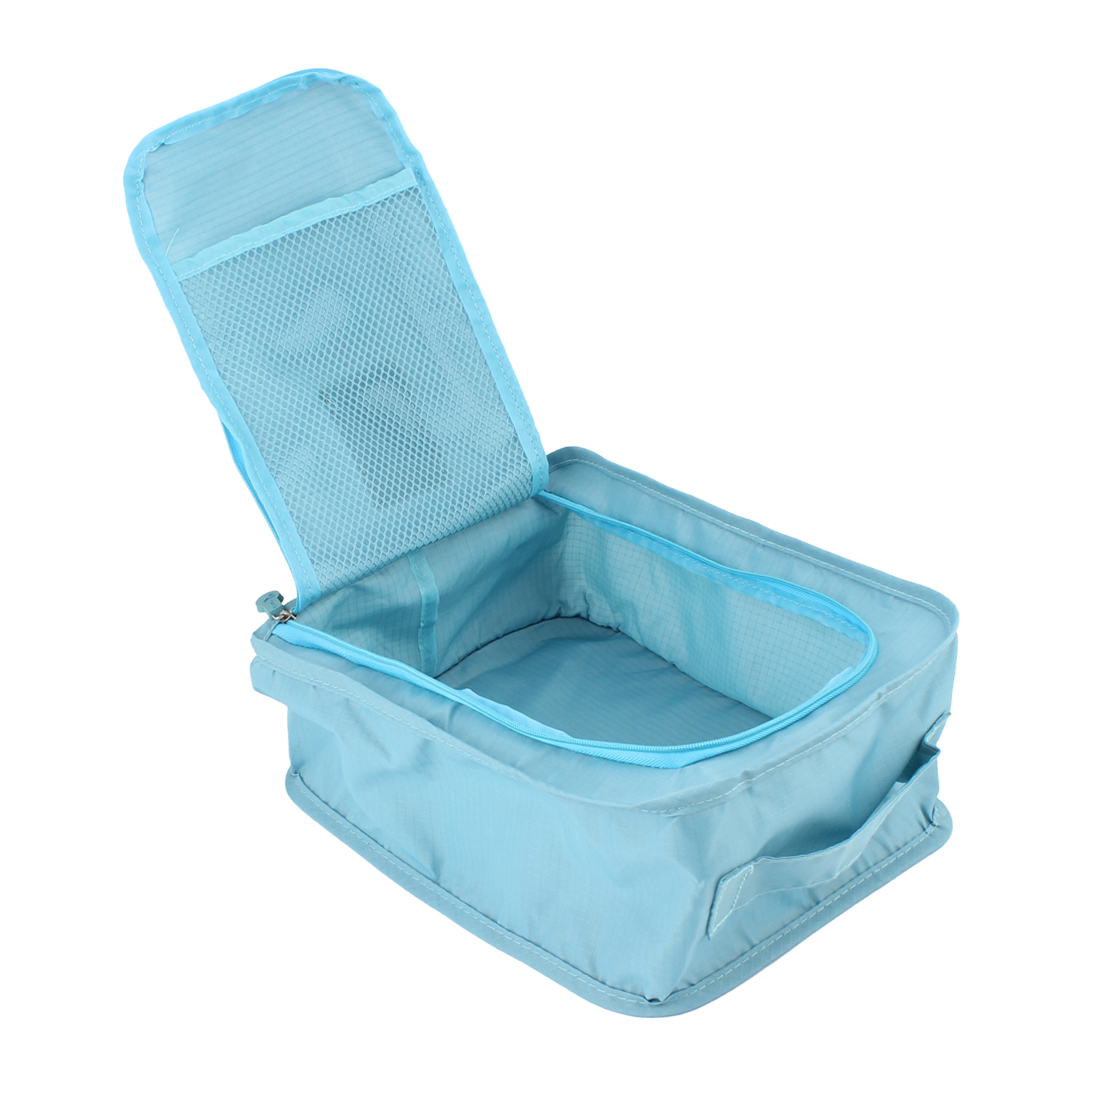 Unique Bargains Water Resistant Shoes Storage Folding Pouch Bag Case Organizer Keeper - image 3 de 6